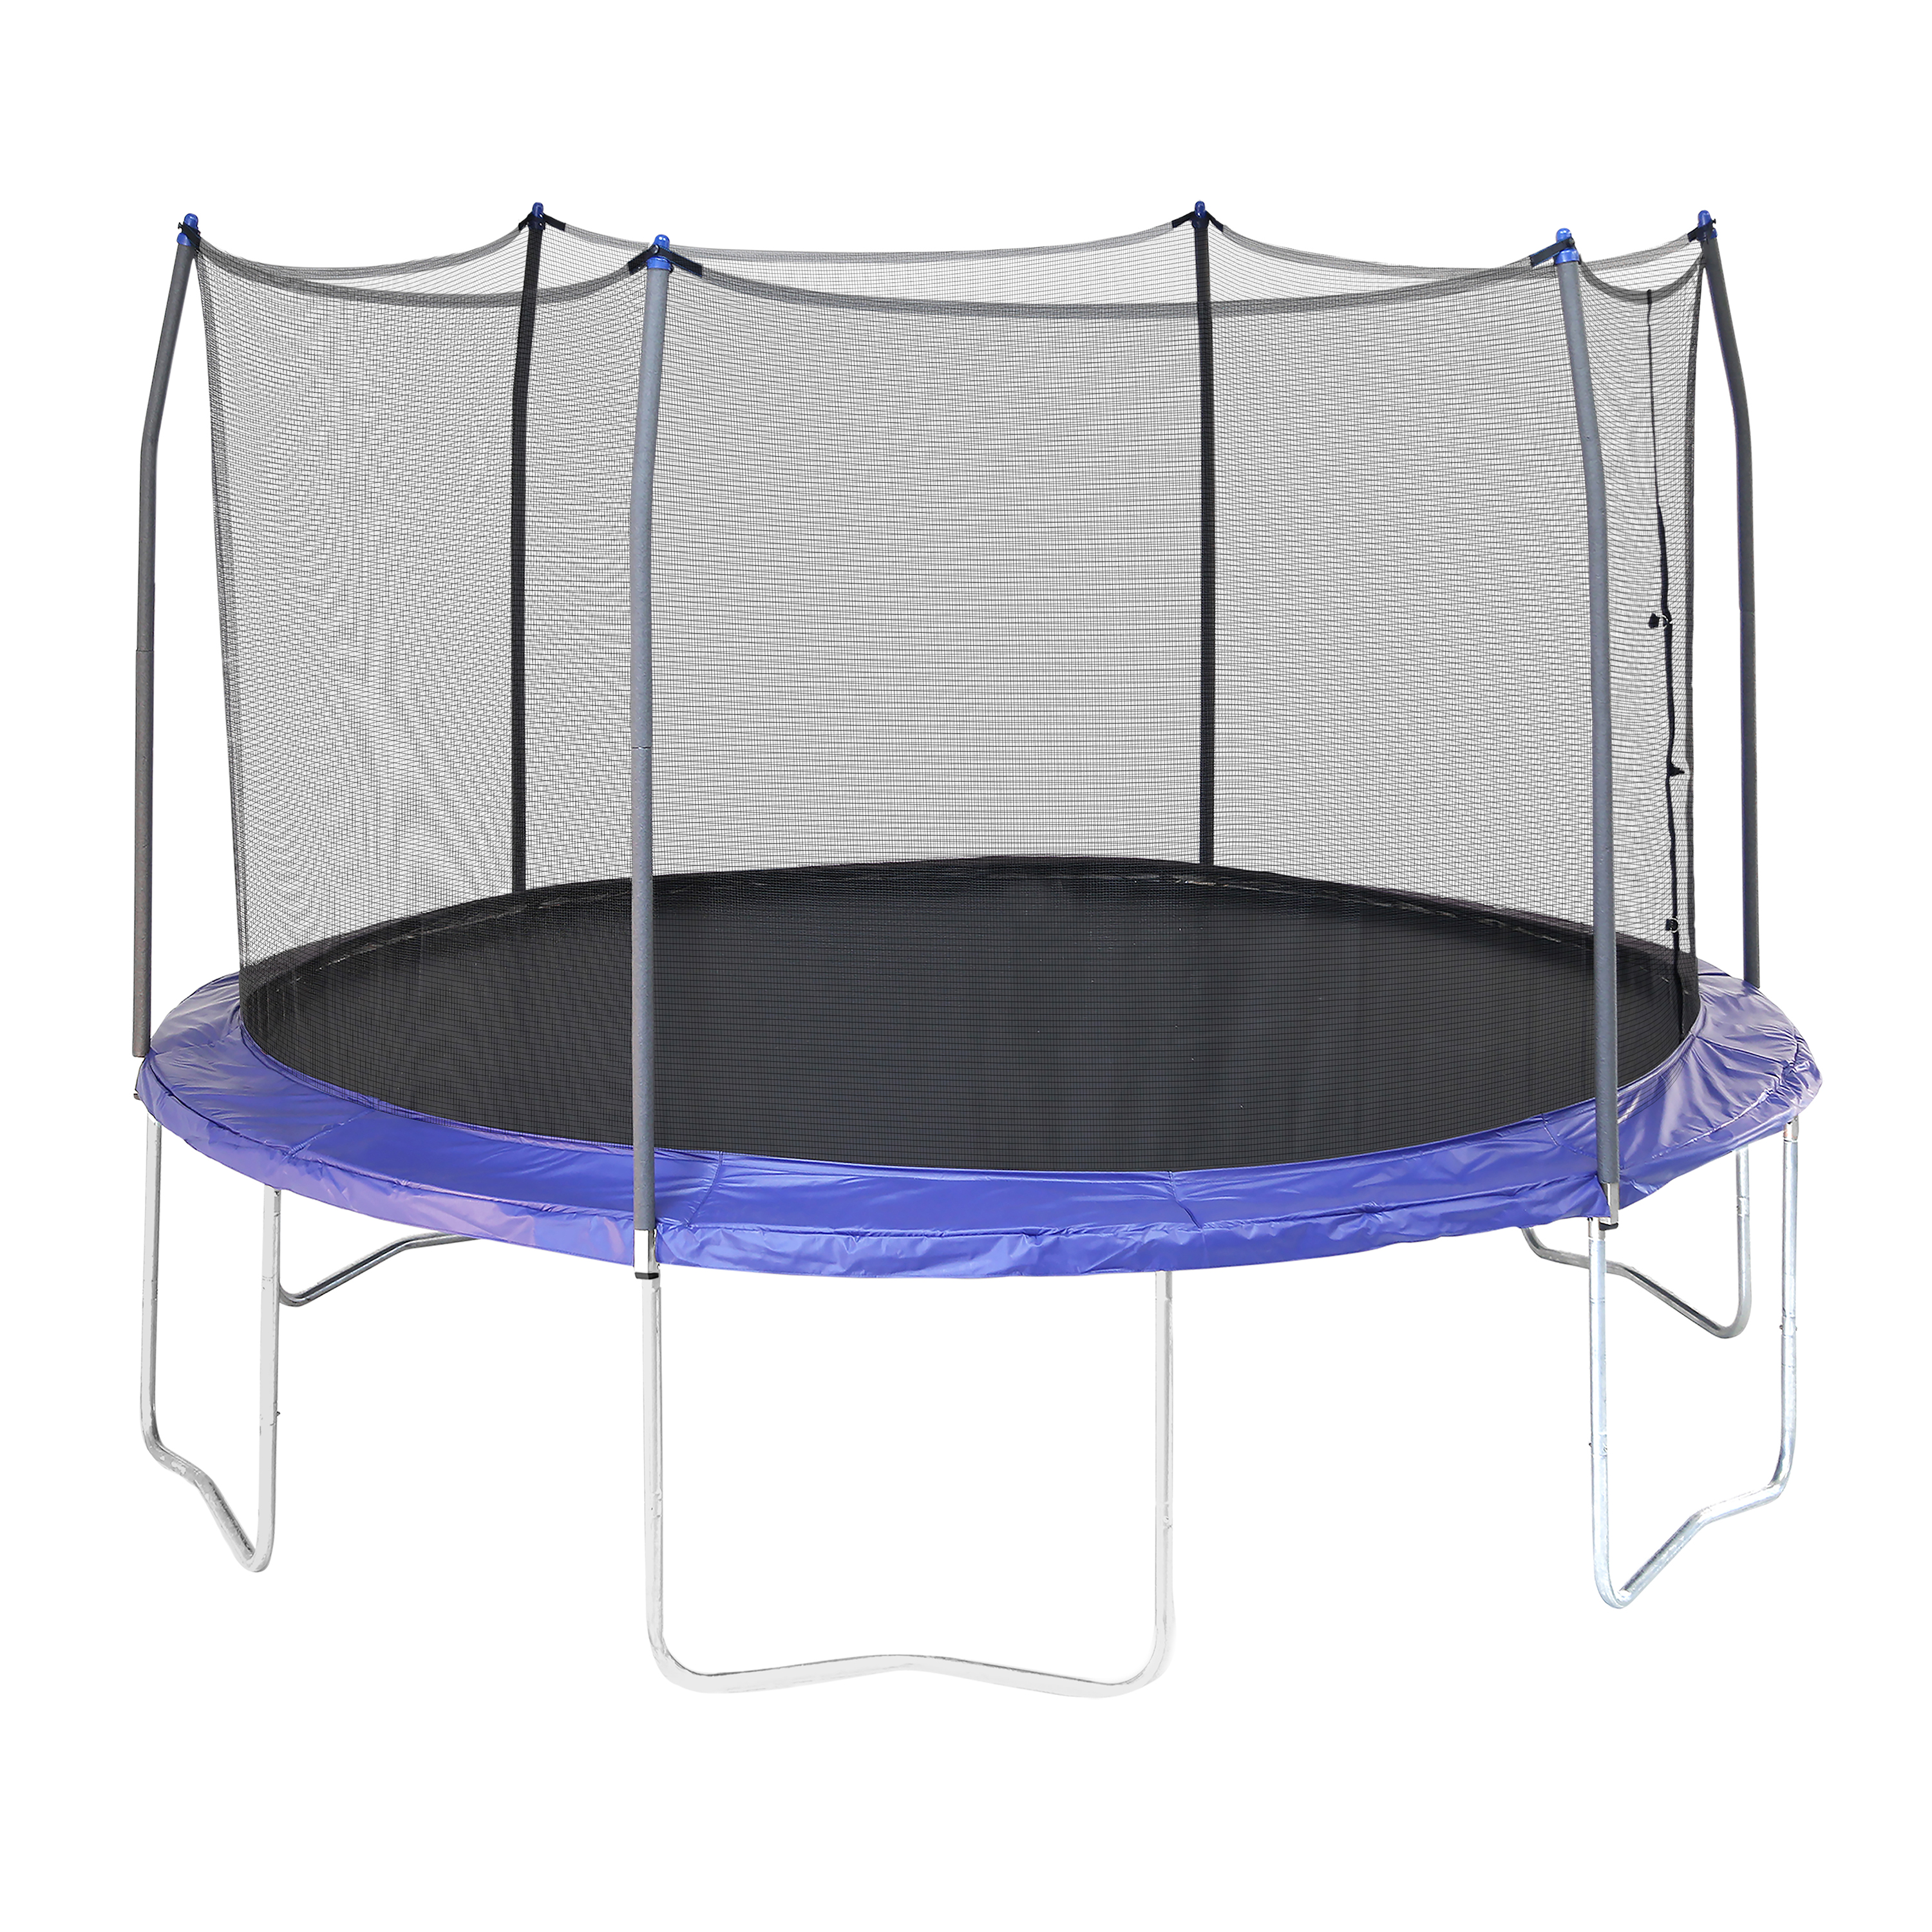 Skywalker Trampolines 12' Round Trampoline with Enclosure - Blue